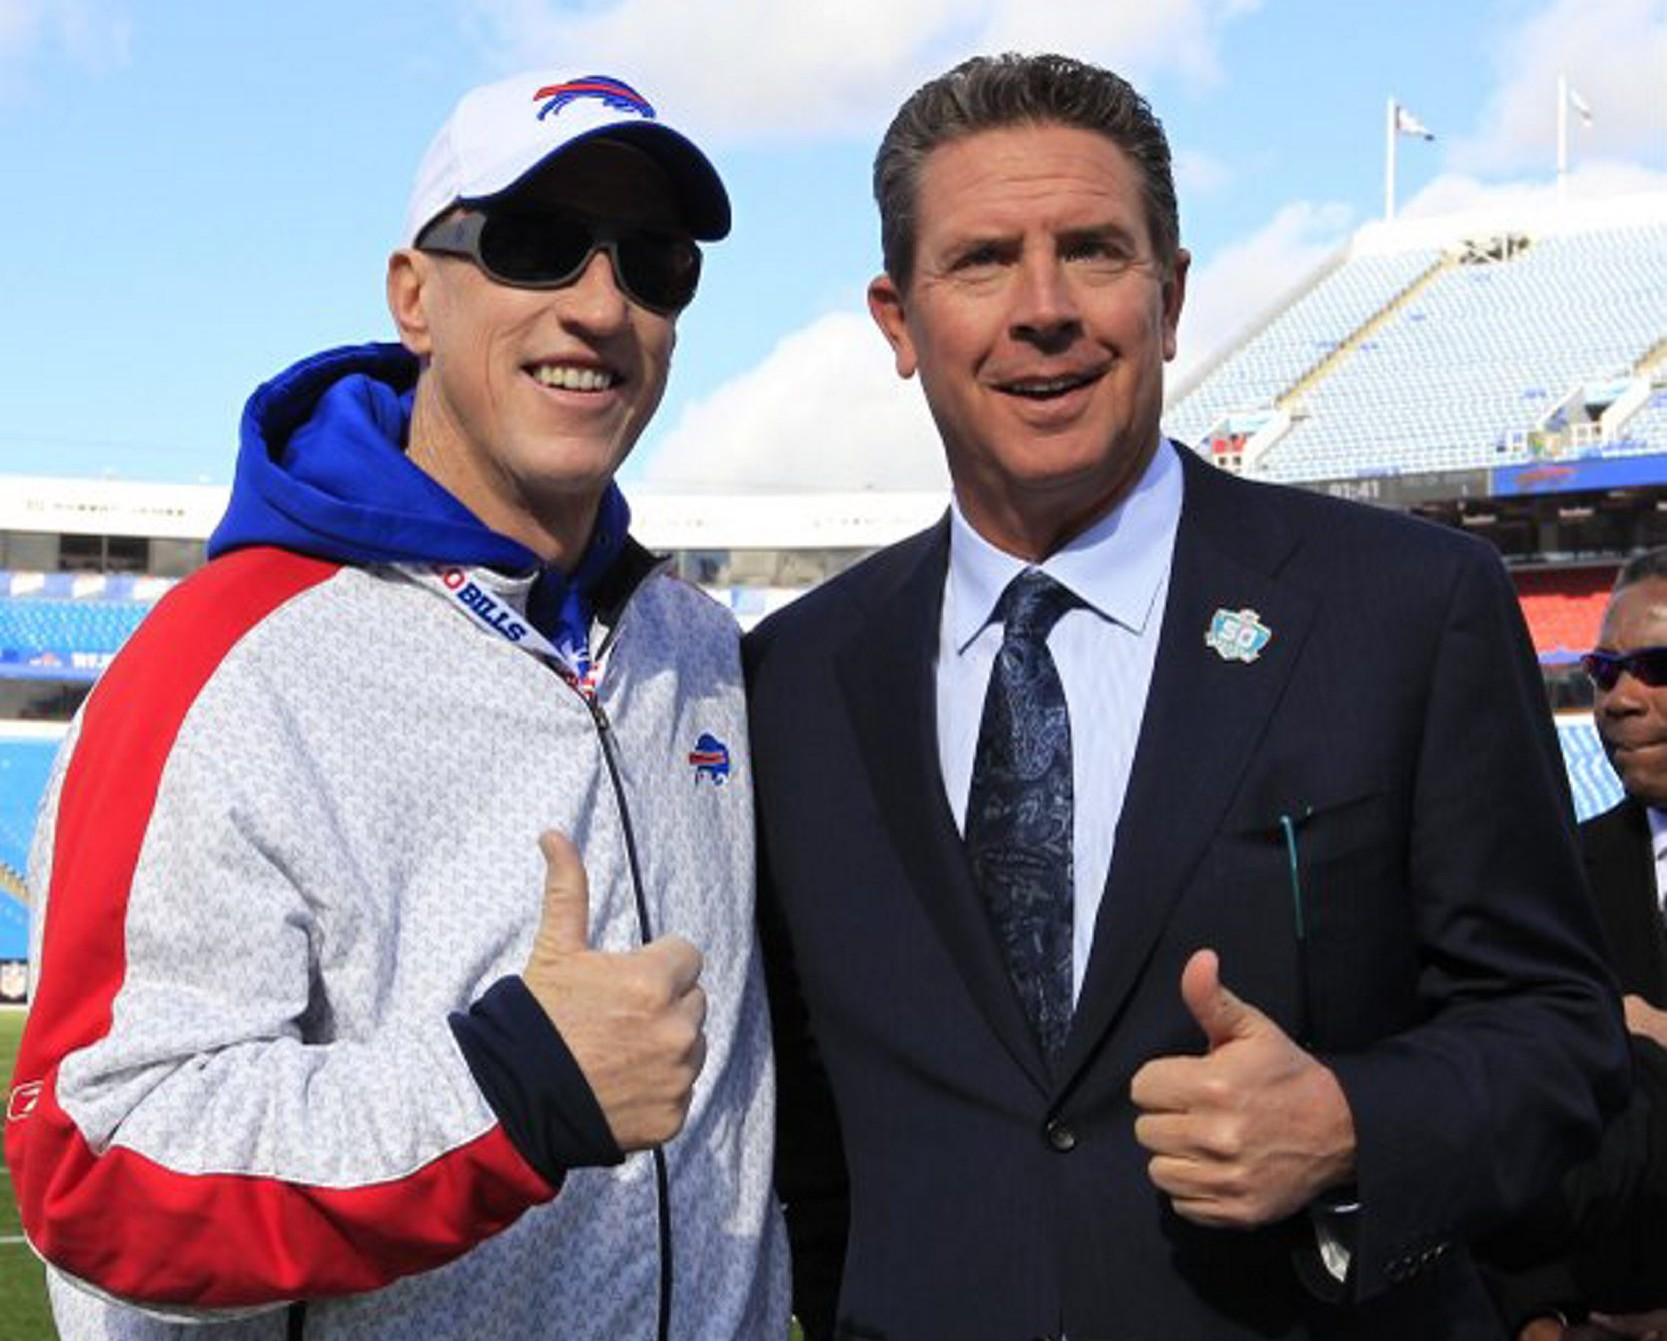 Dan Marino, right, was added to the Dolphins 'active roster,' the team said in a release. (Buffalo News file photo)